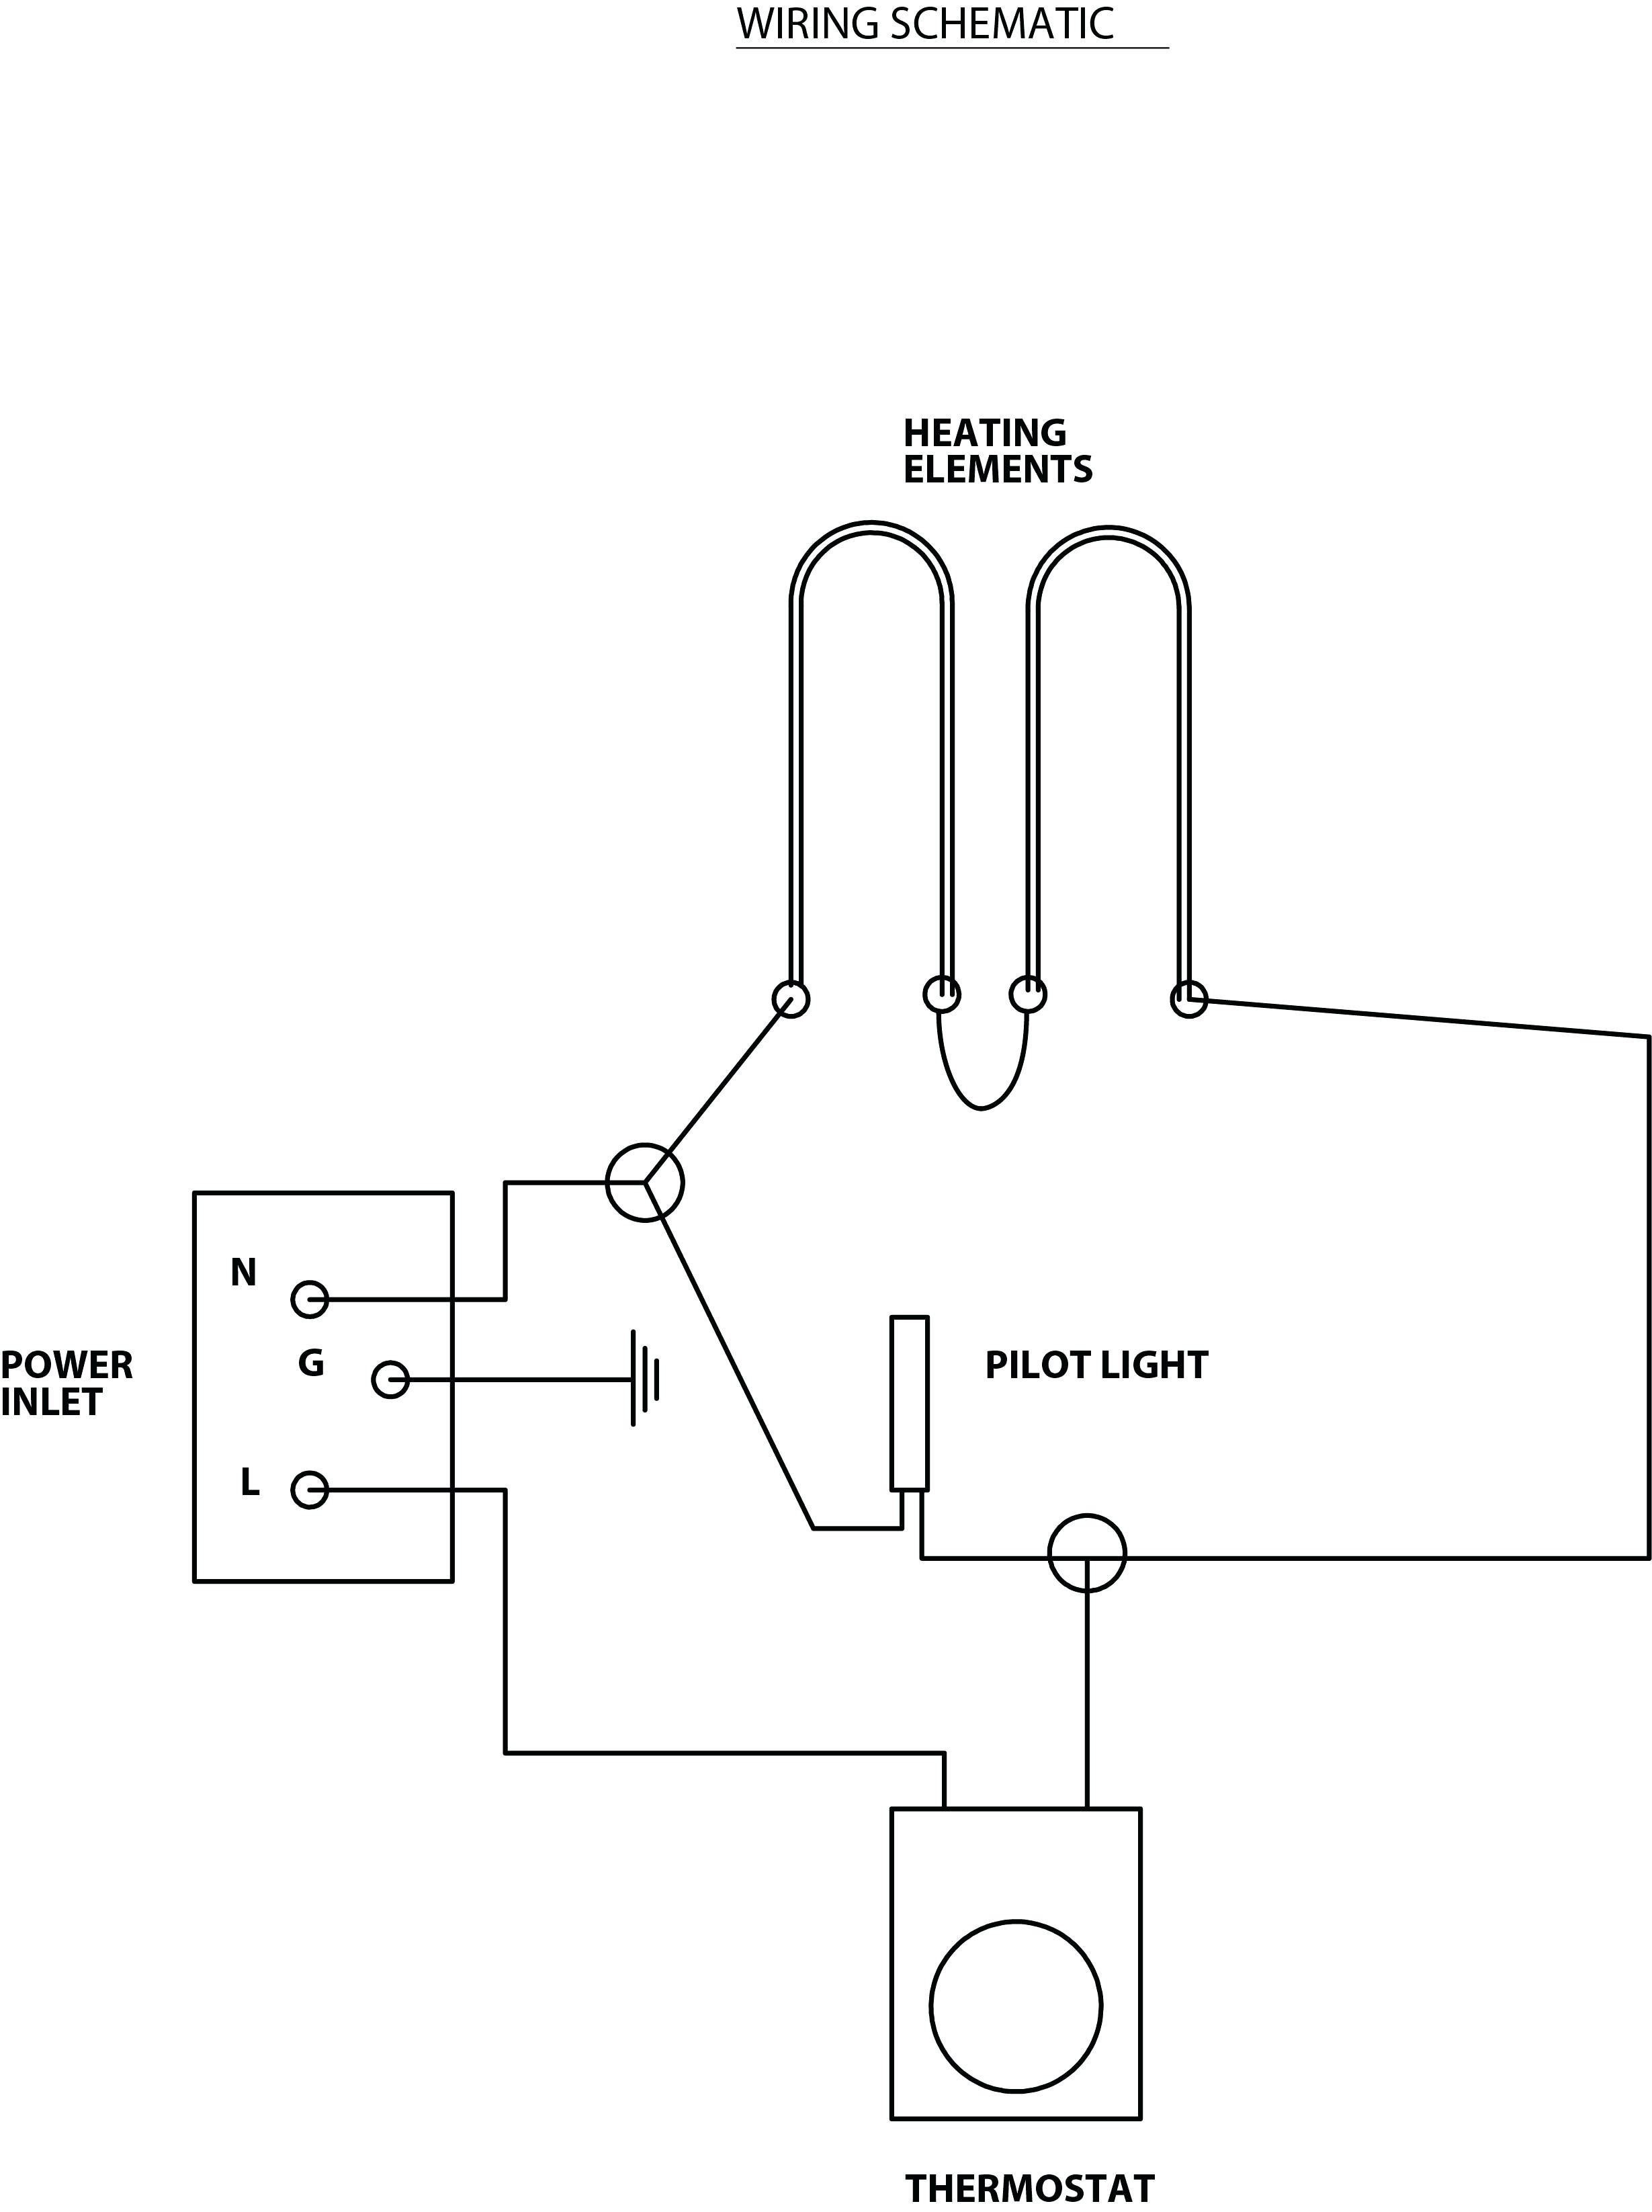 220 Volt Wiring Diagram from static-cdn.imageservice.cloud